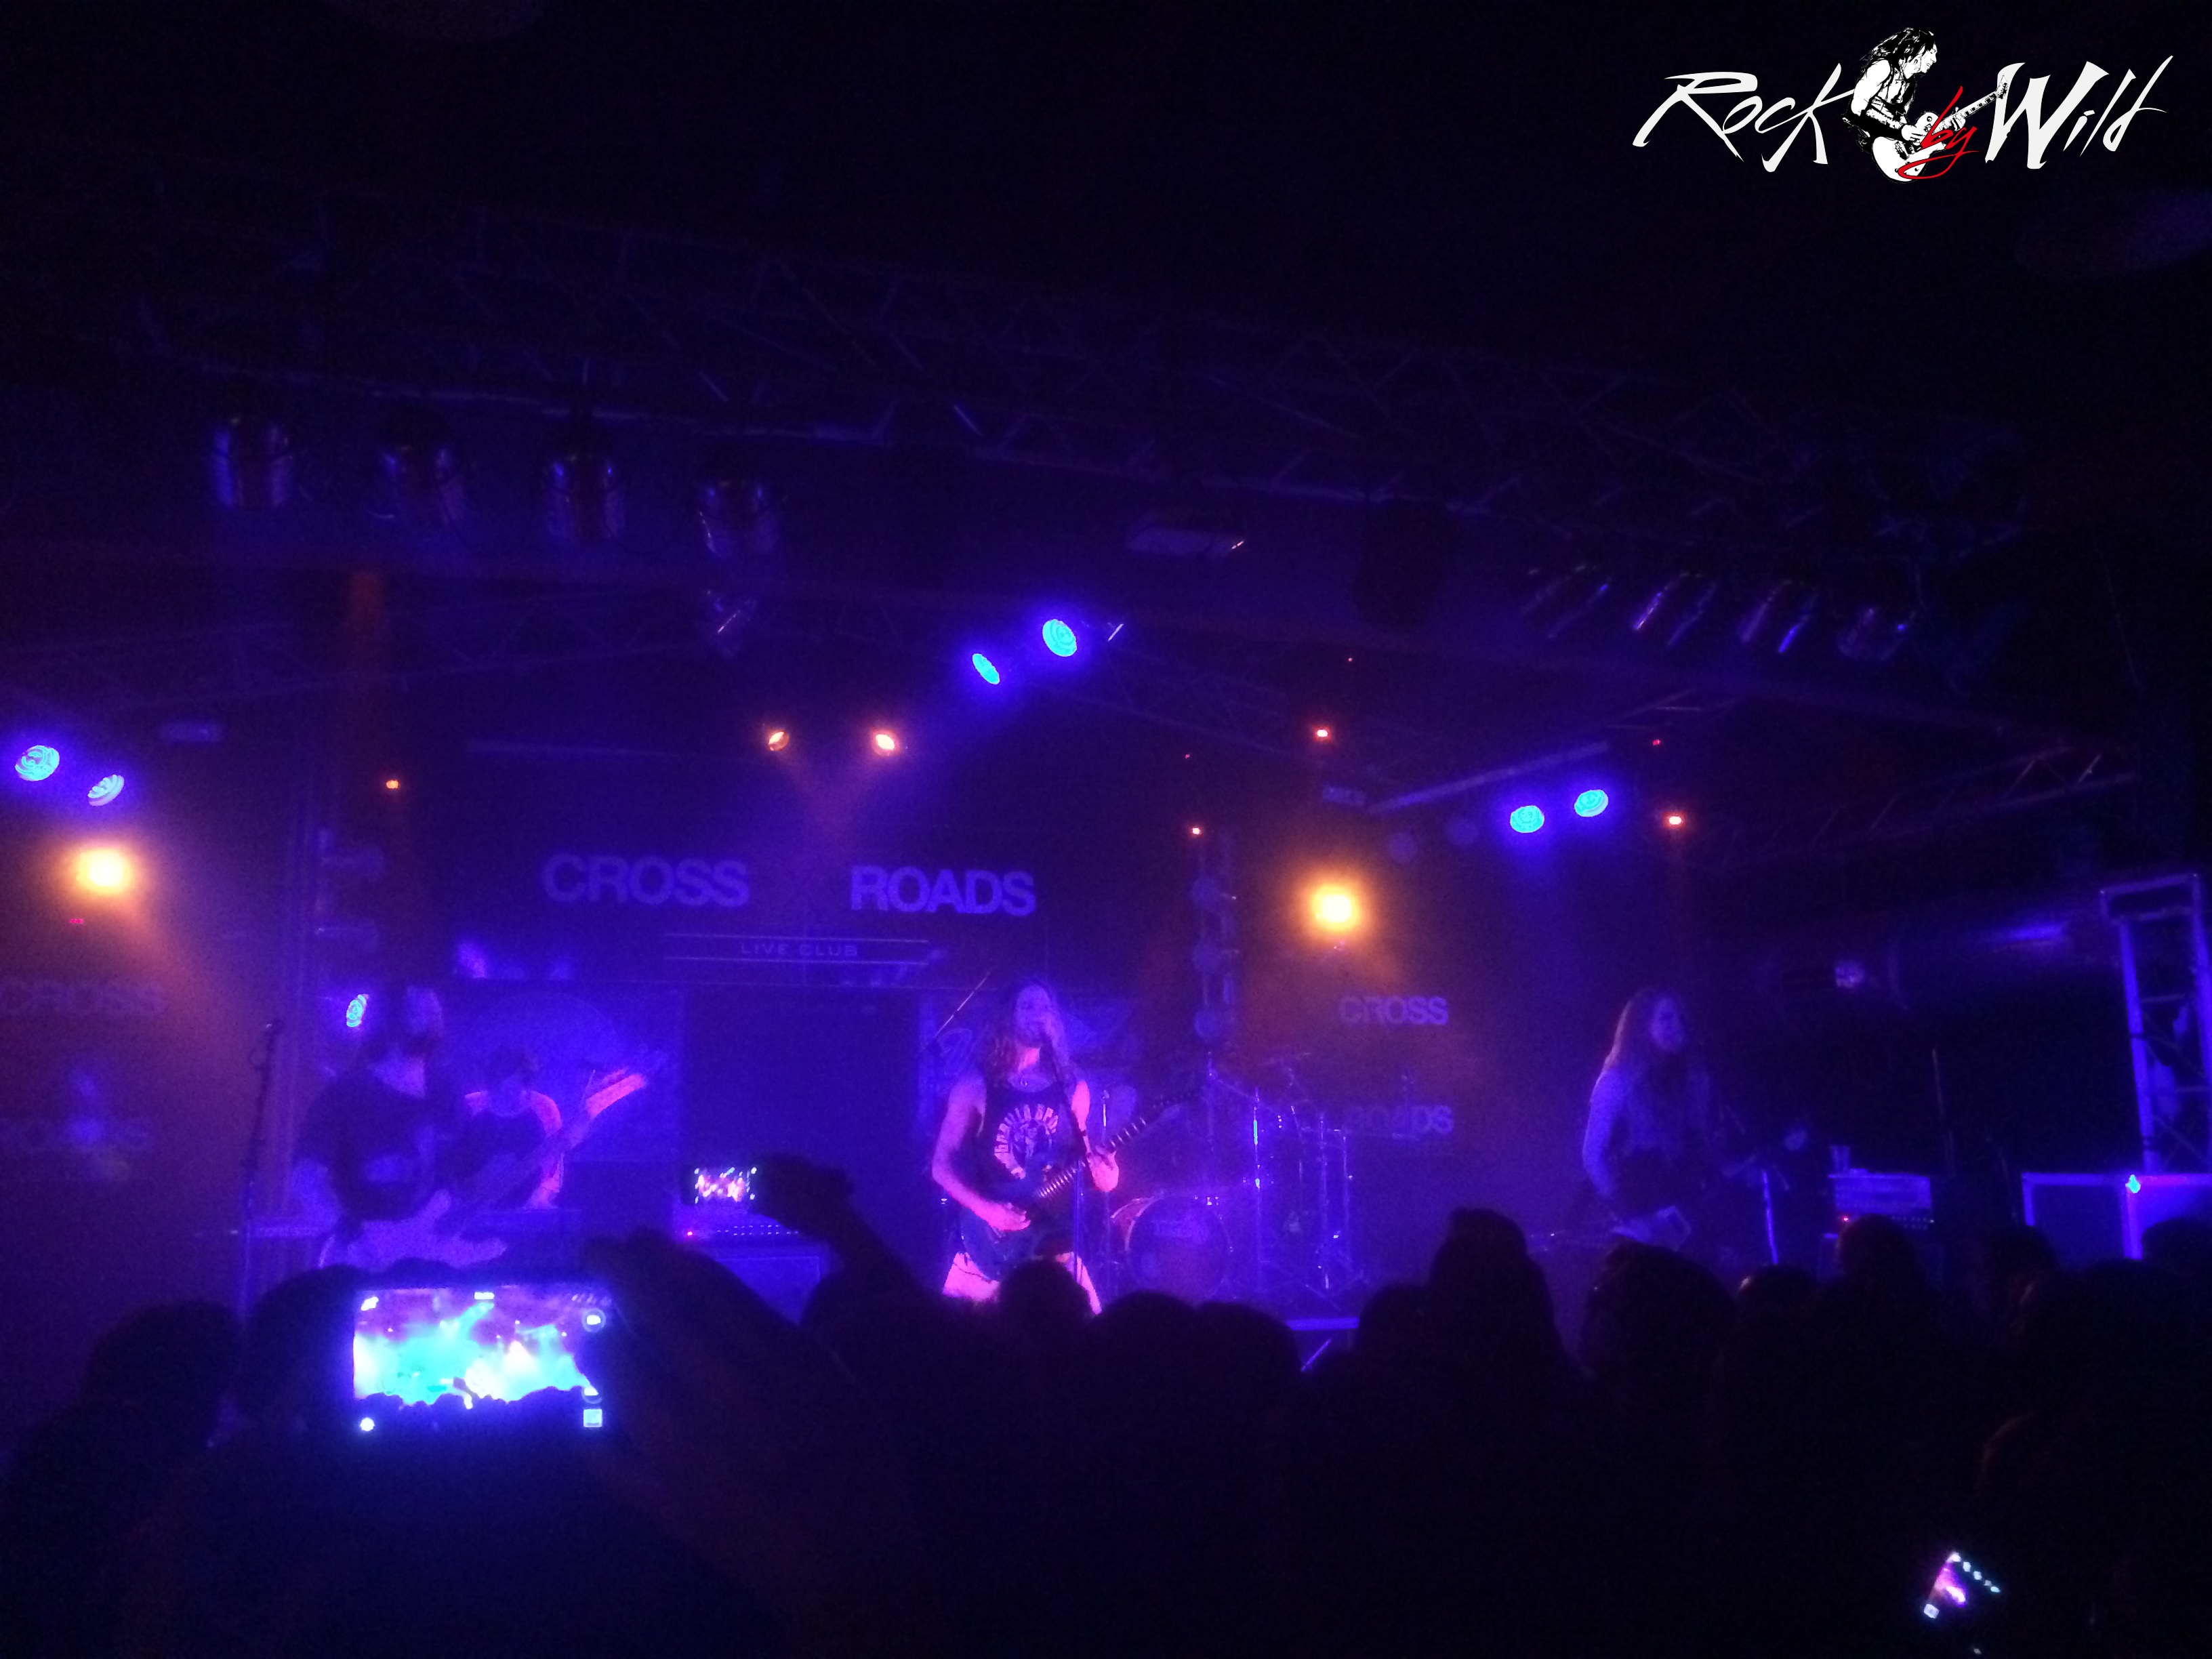 Pain Of Salvation + Echotime + Avenue Lie @ Crossroads - 12 12 2015